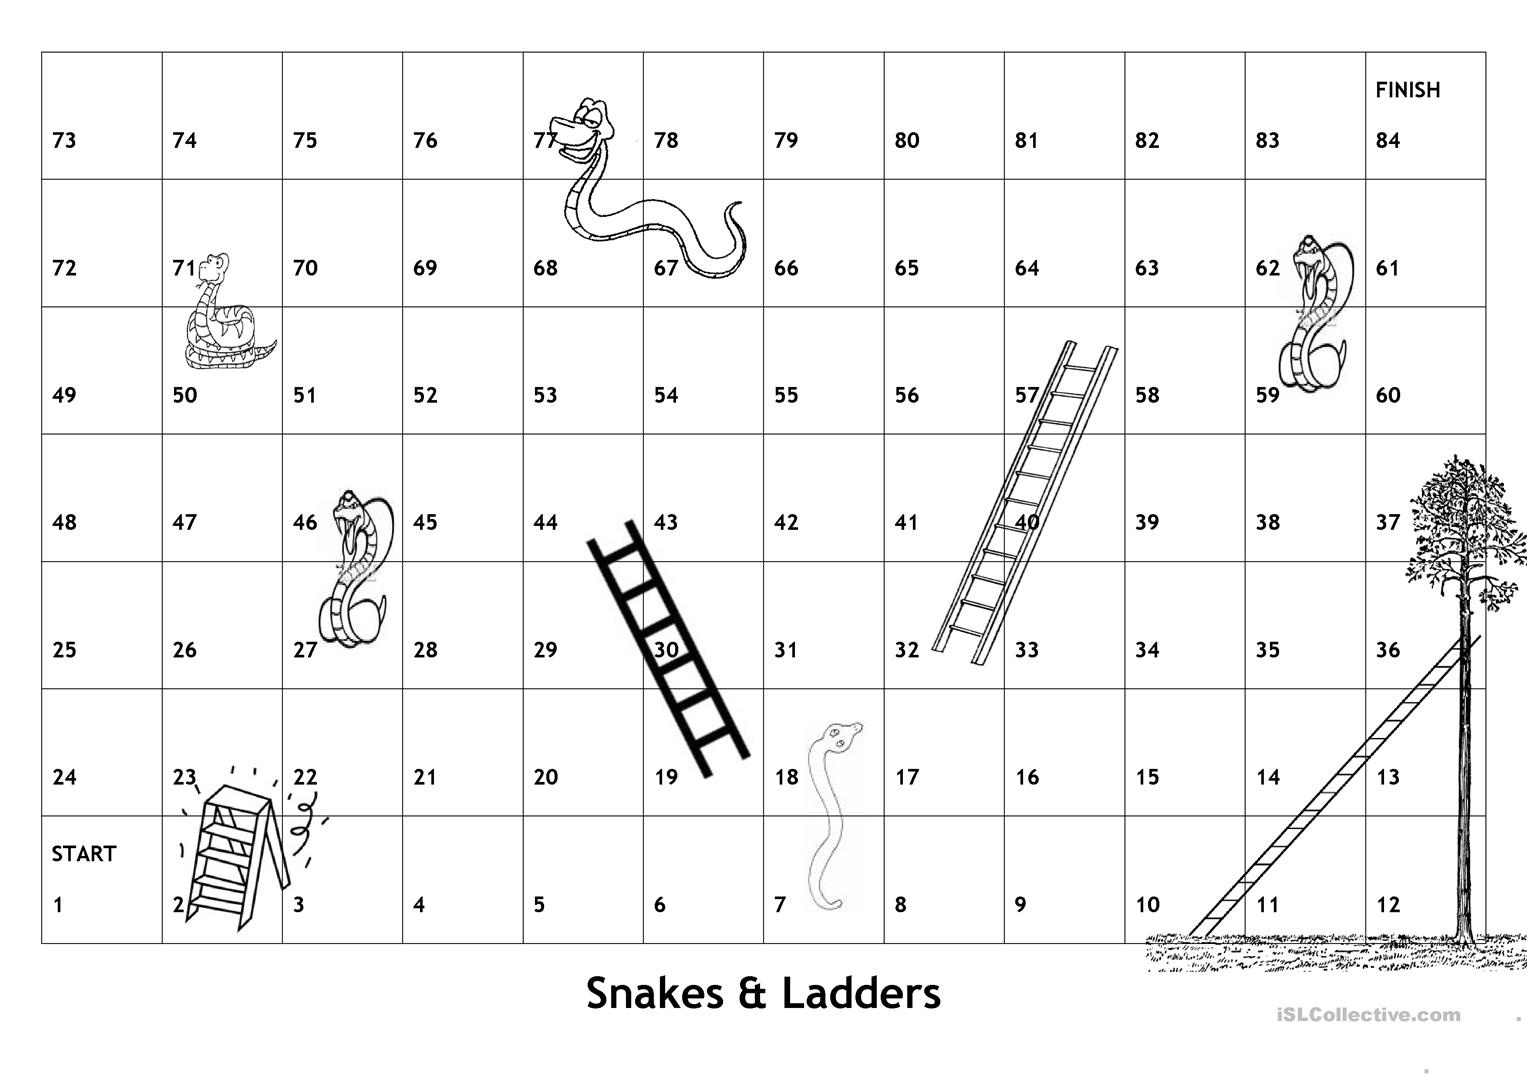 snakes and ladders printable snake ladder ludo print play stock illustration ladders and printable snakes